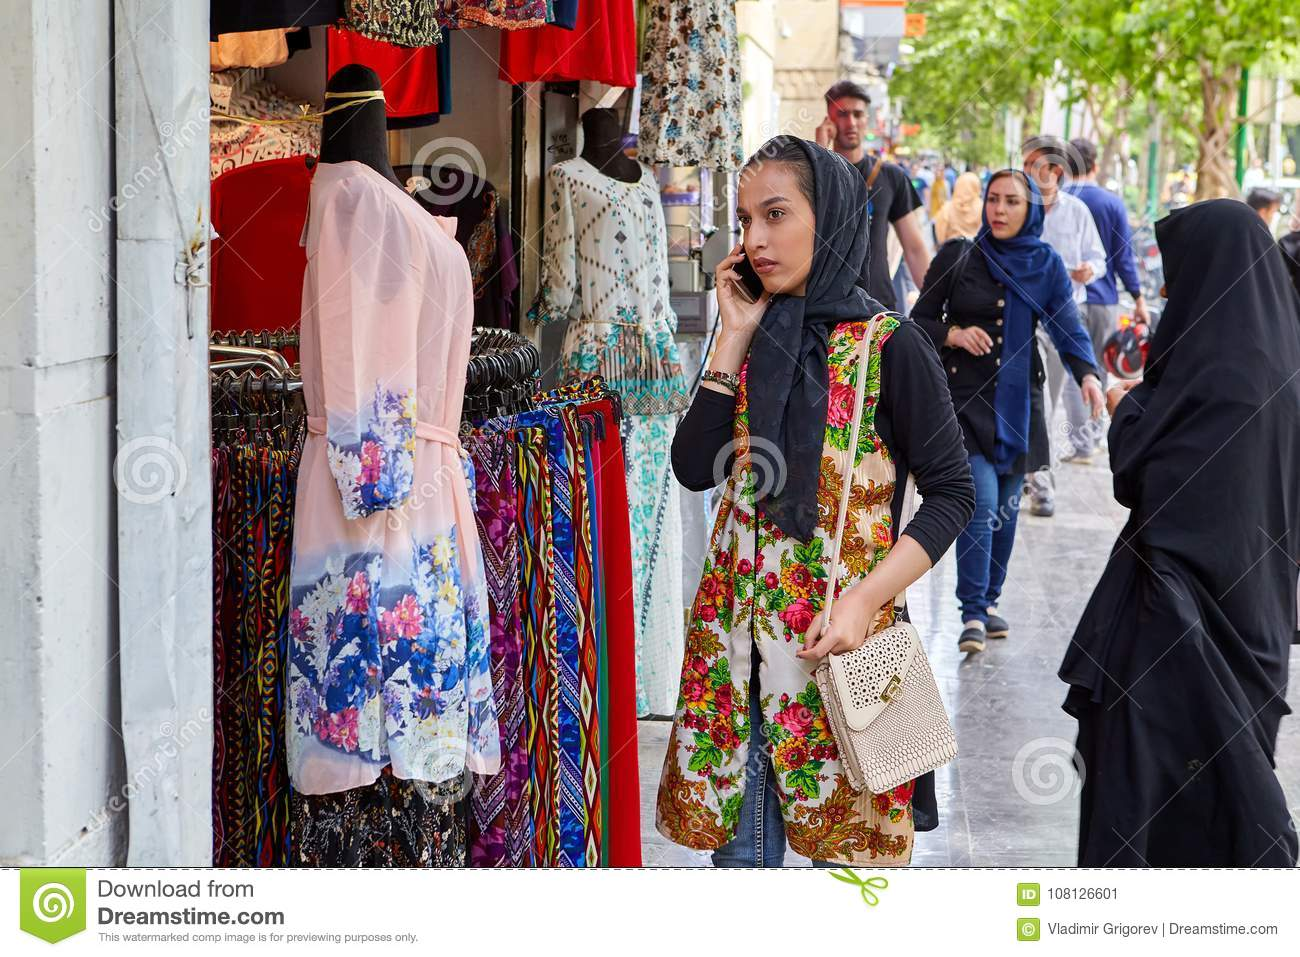 6810ed2ad3e3 Girl Uses Smartphone Near Shop With Bright Clothes